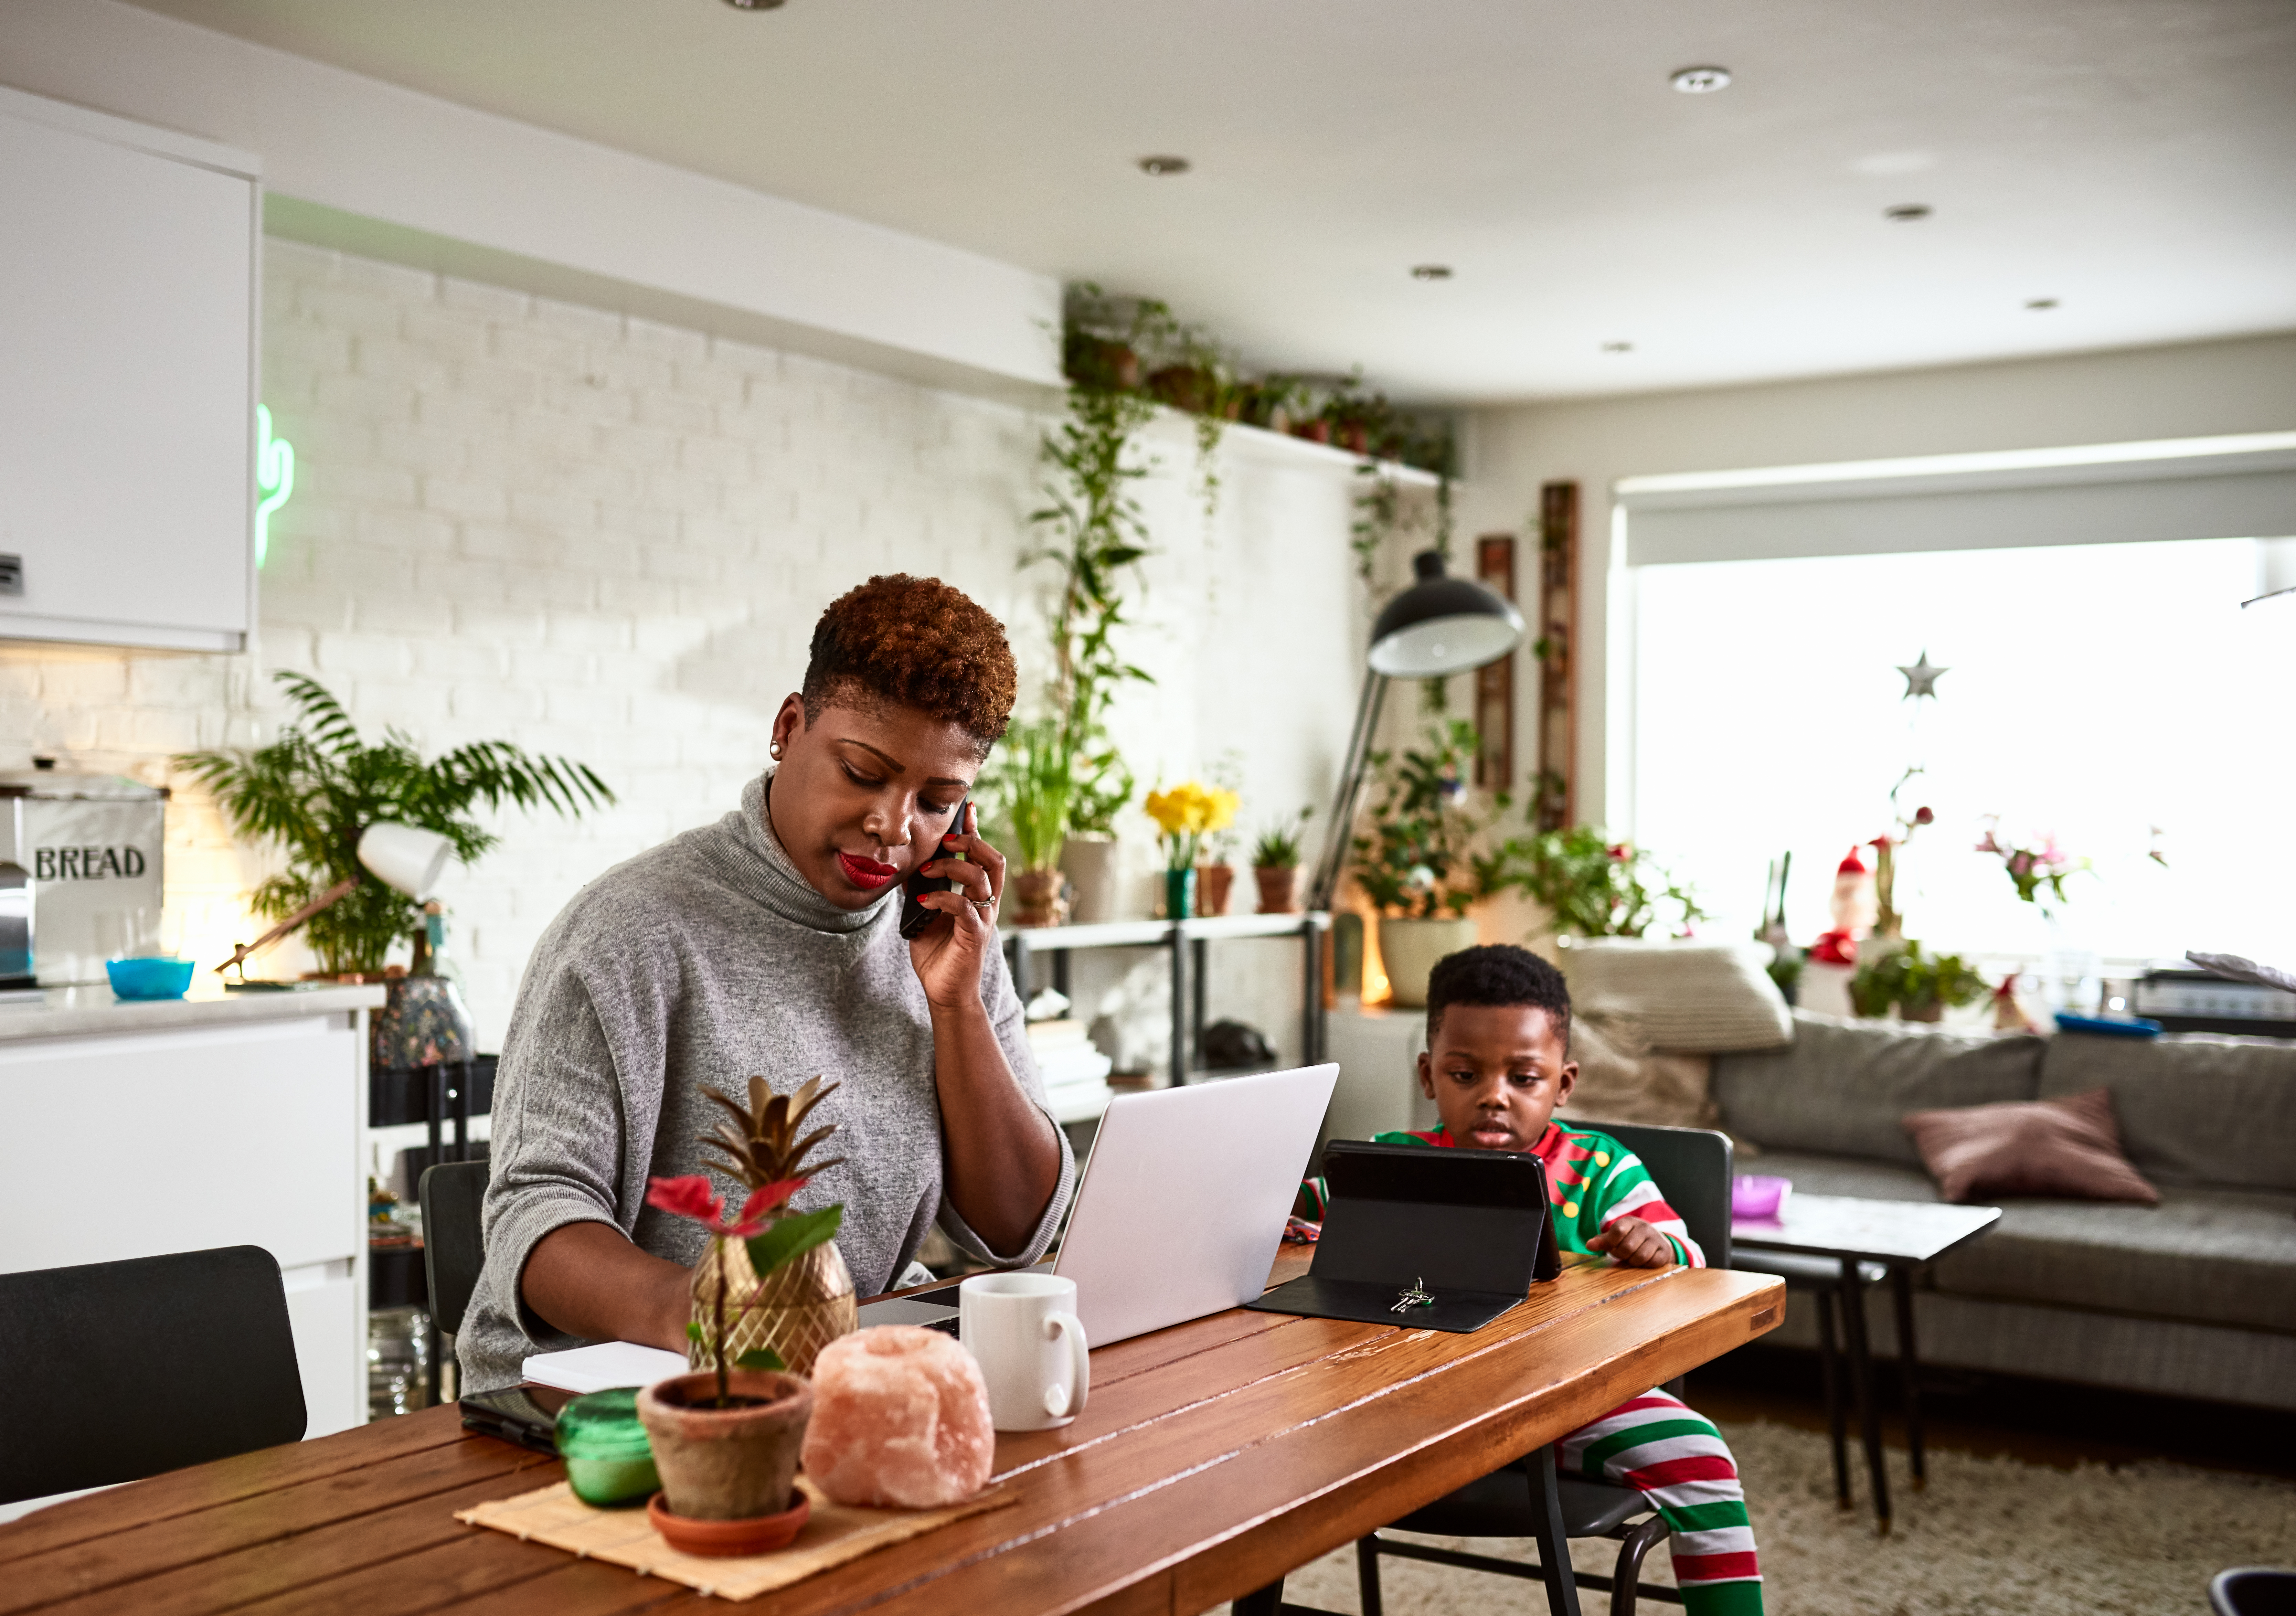 Multi tasking mother looking after son and working from home, modern parenting, freelancer, responsibility